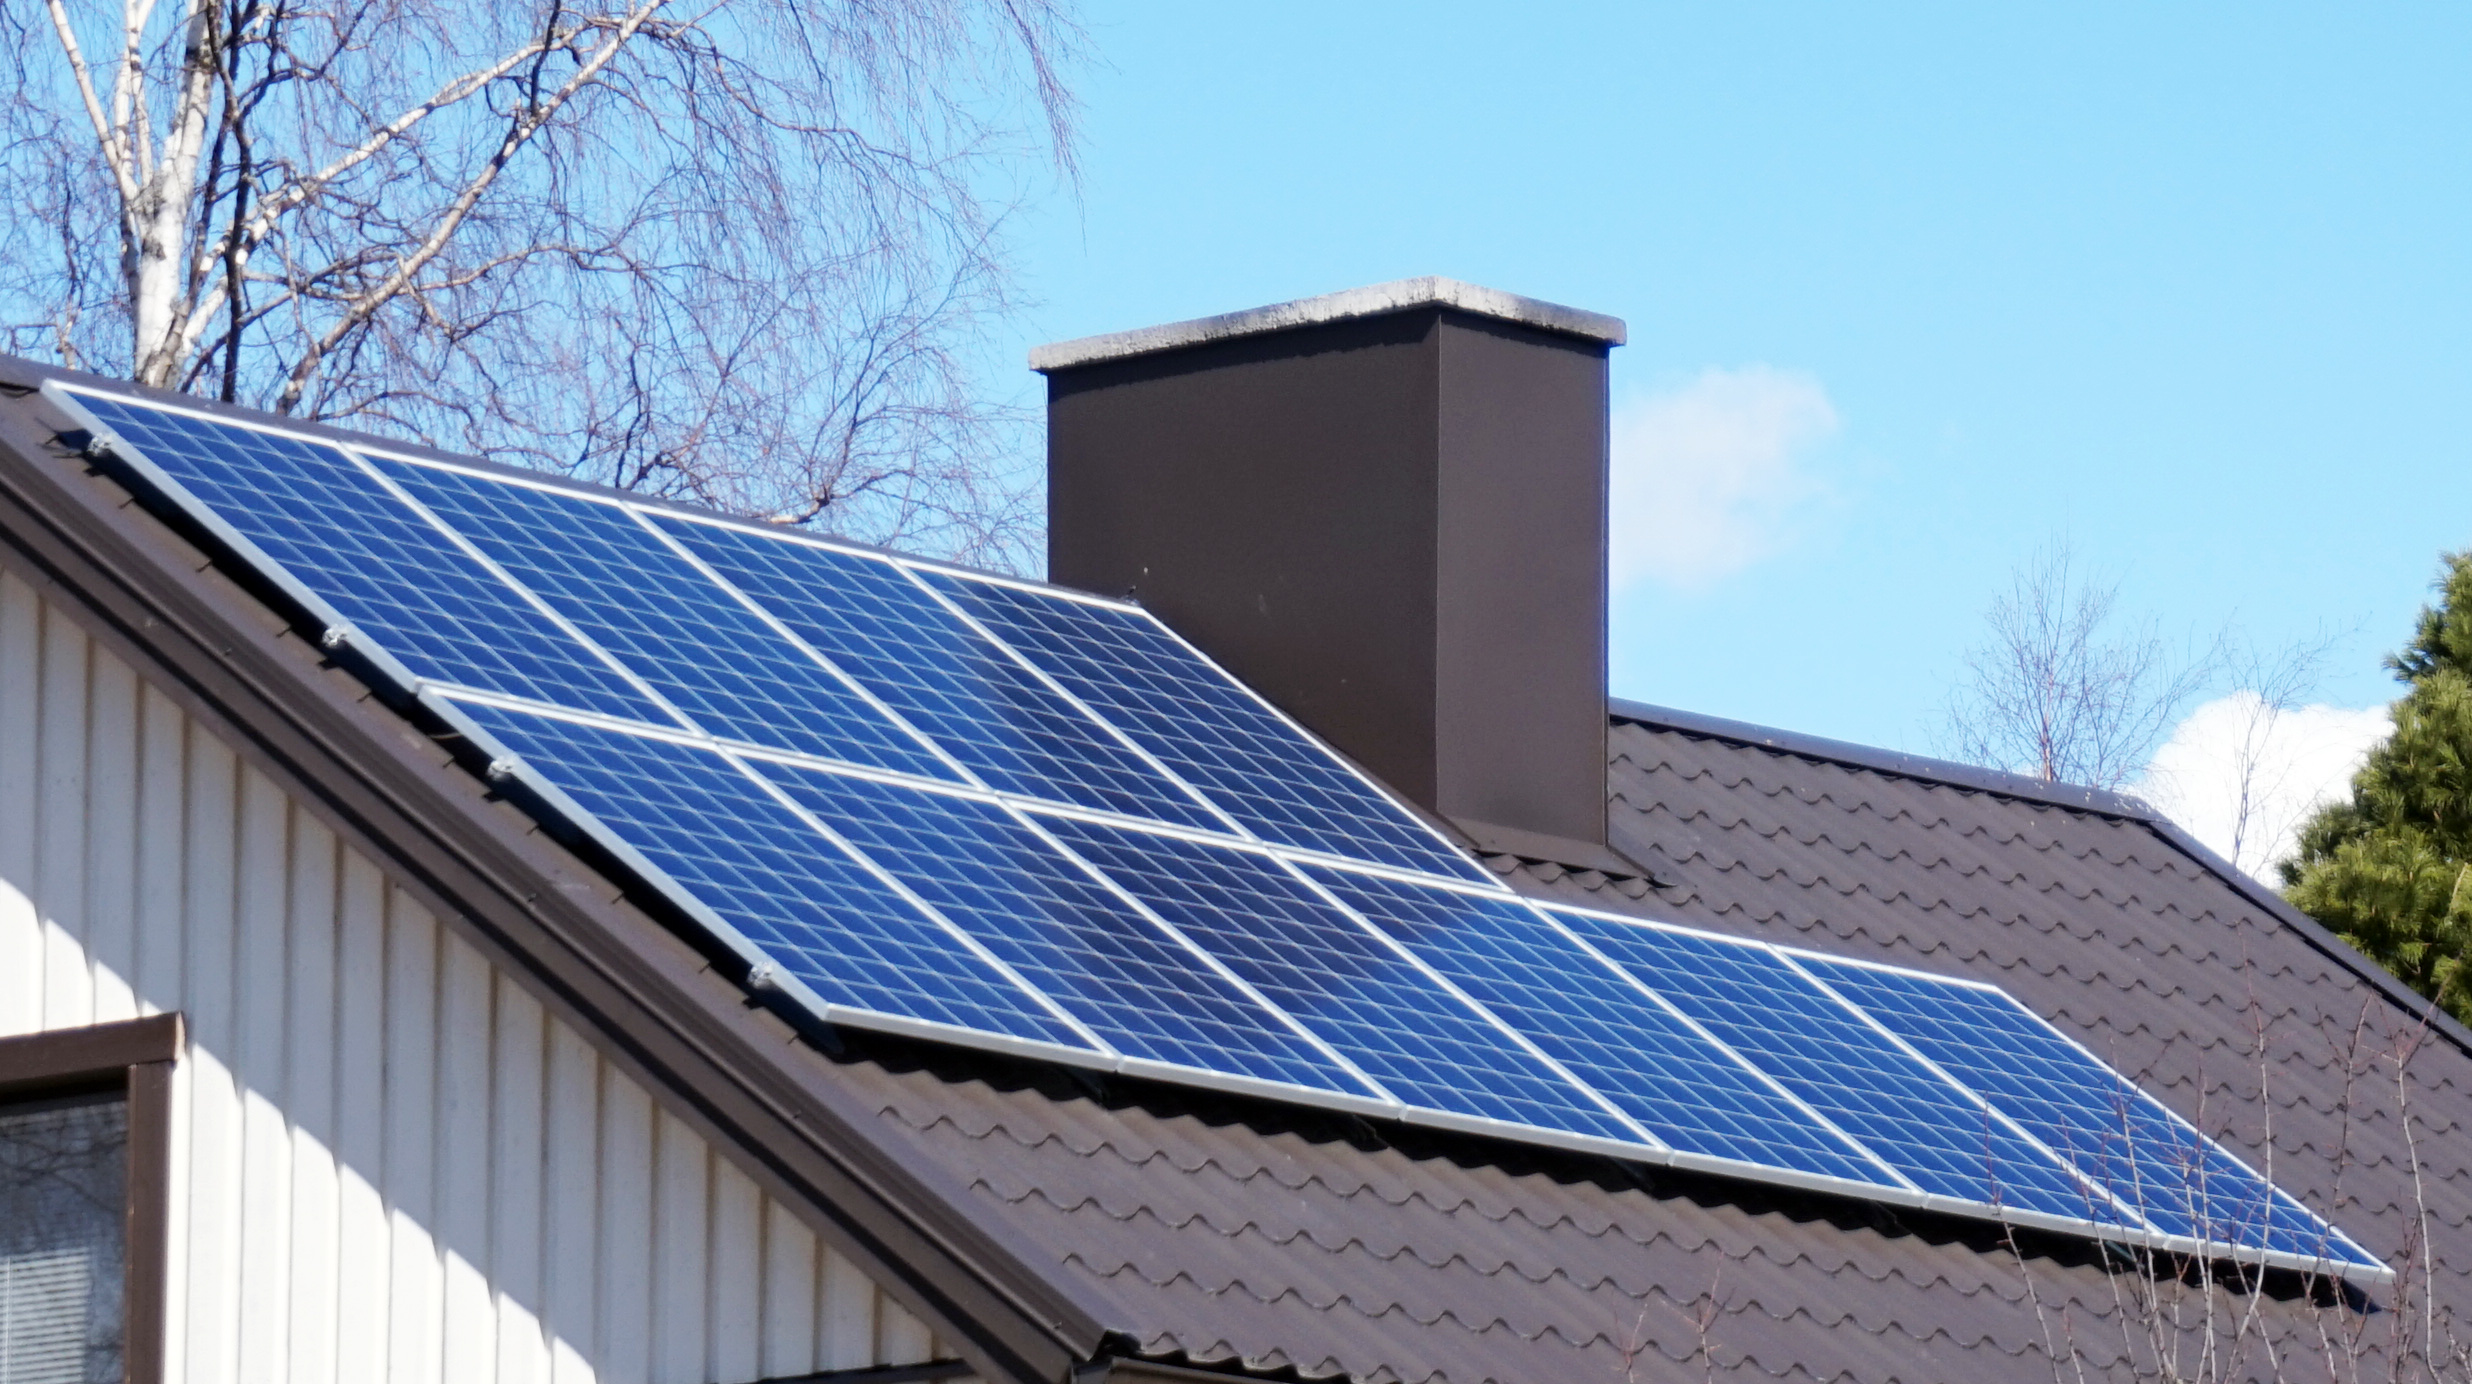 Council solar scheme to help pensioners go solar and cut power bills